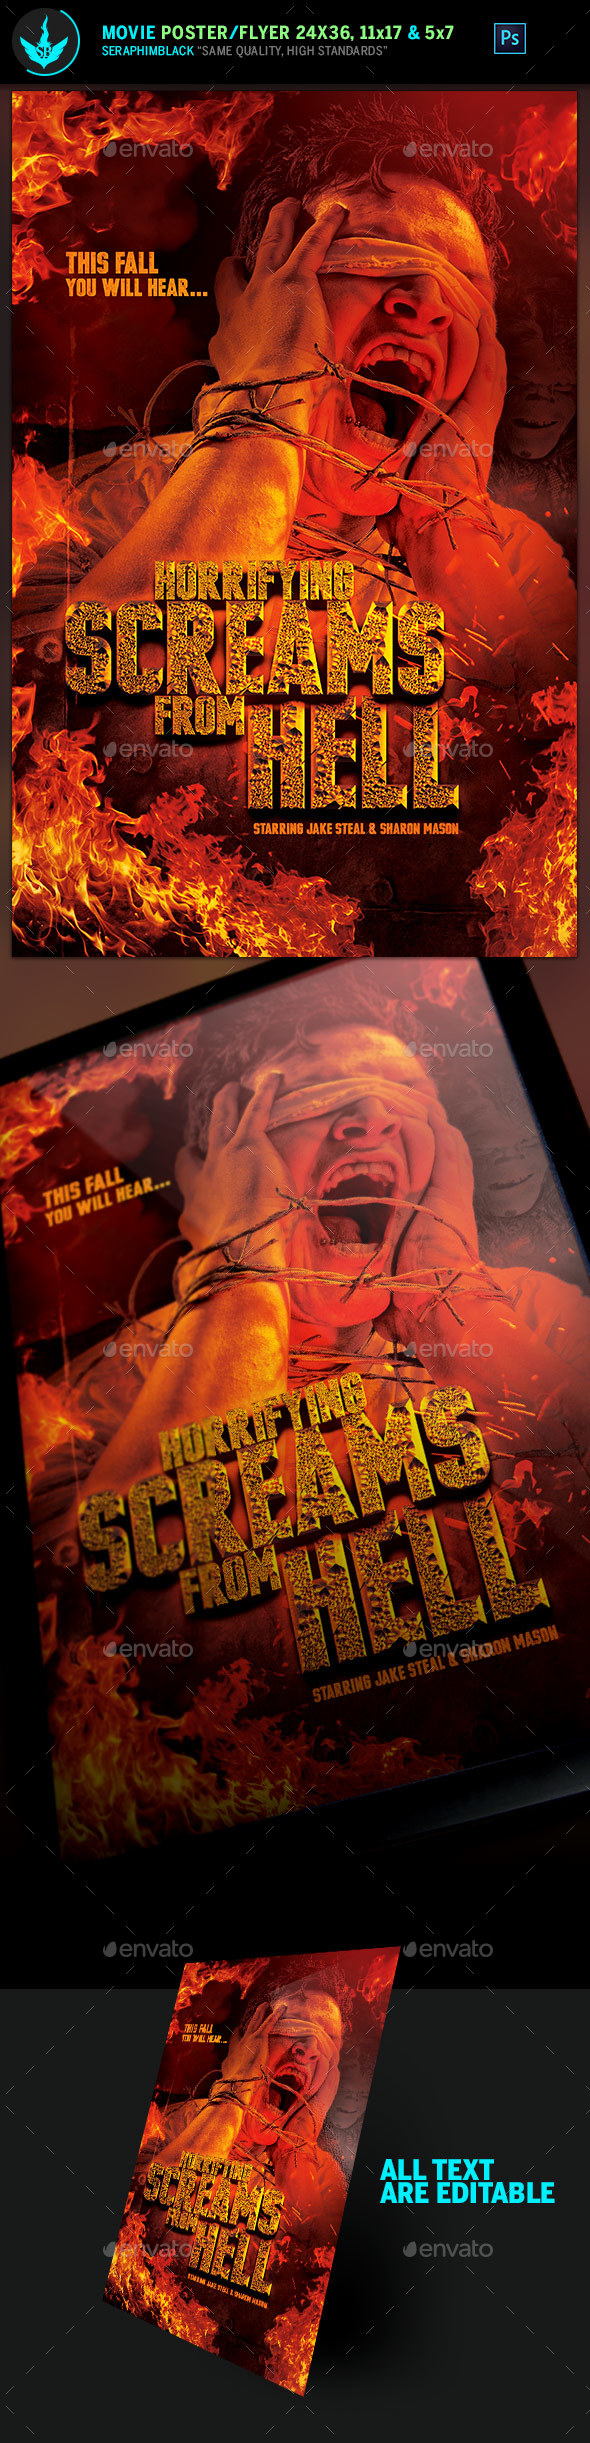 GraphicRiver Screams from Hell Movie Poster plus Flyer Template 20906186